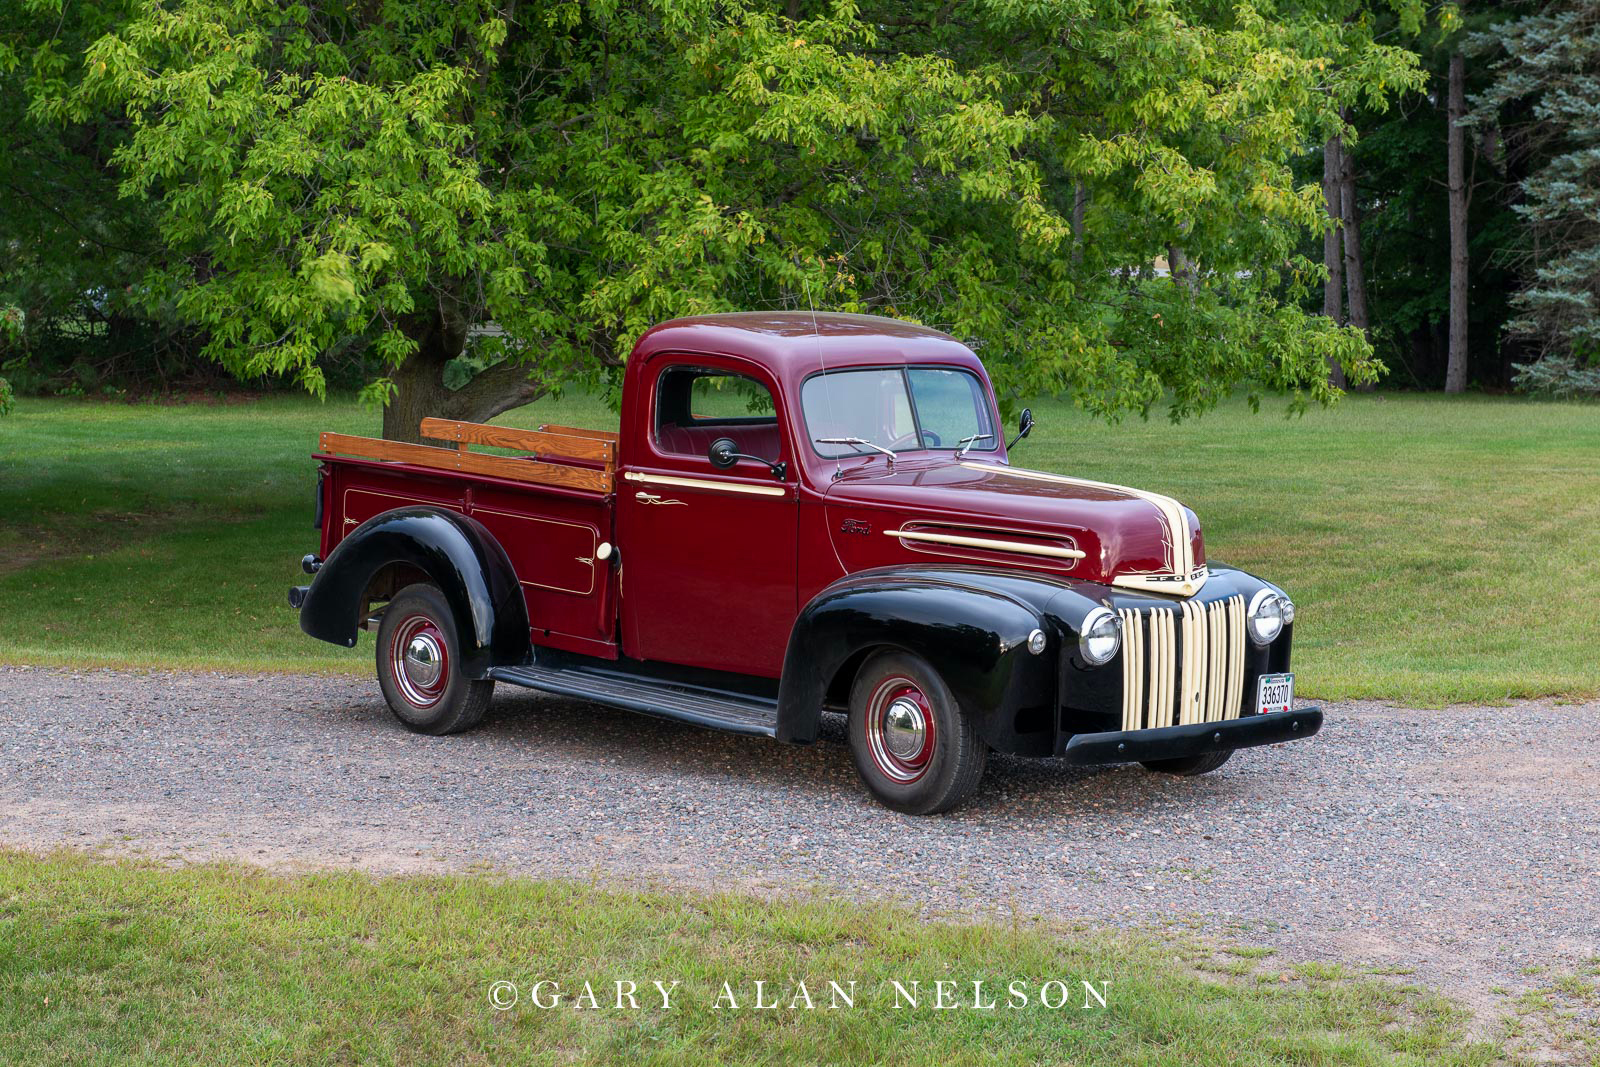 Ford, antique truck, pickup, vintage truck,1947 Ford 1/2 Ton Model 83 Pickup, photo